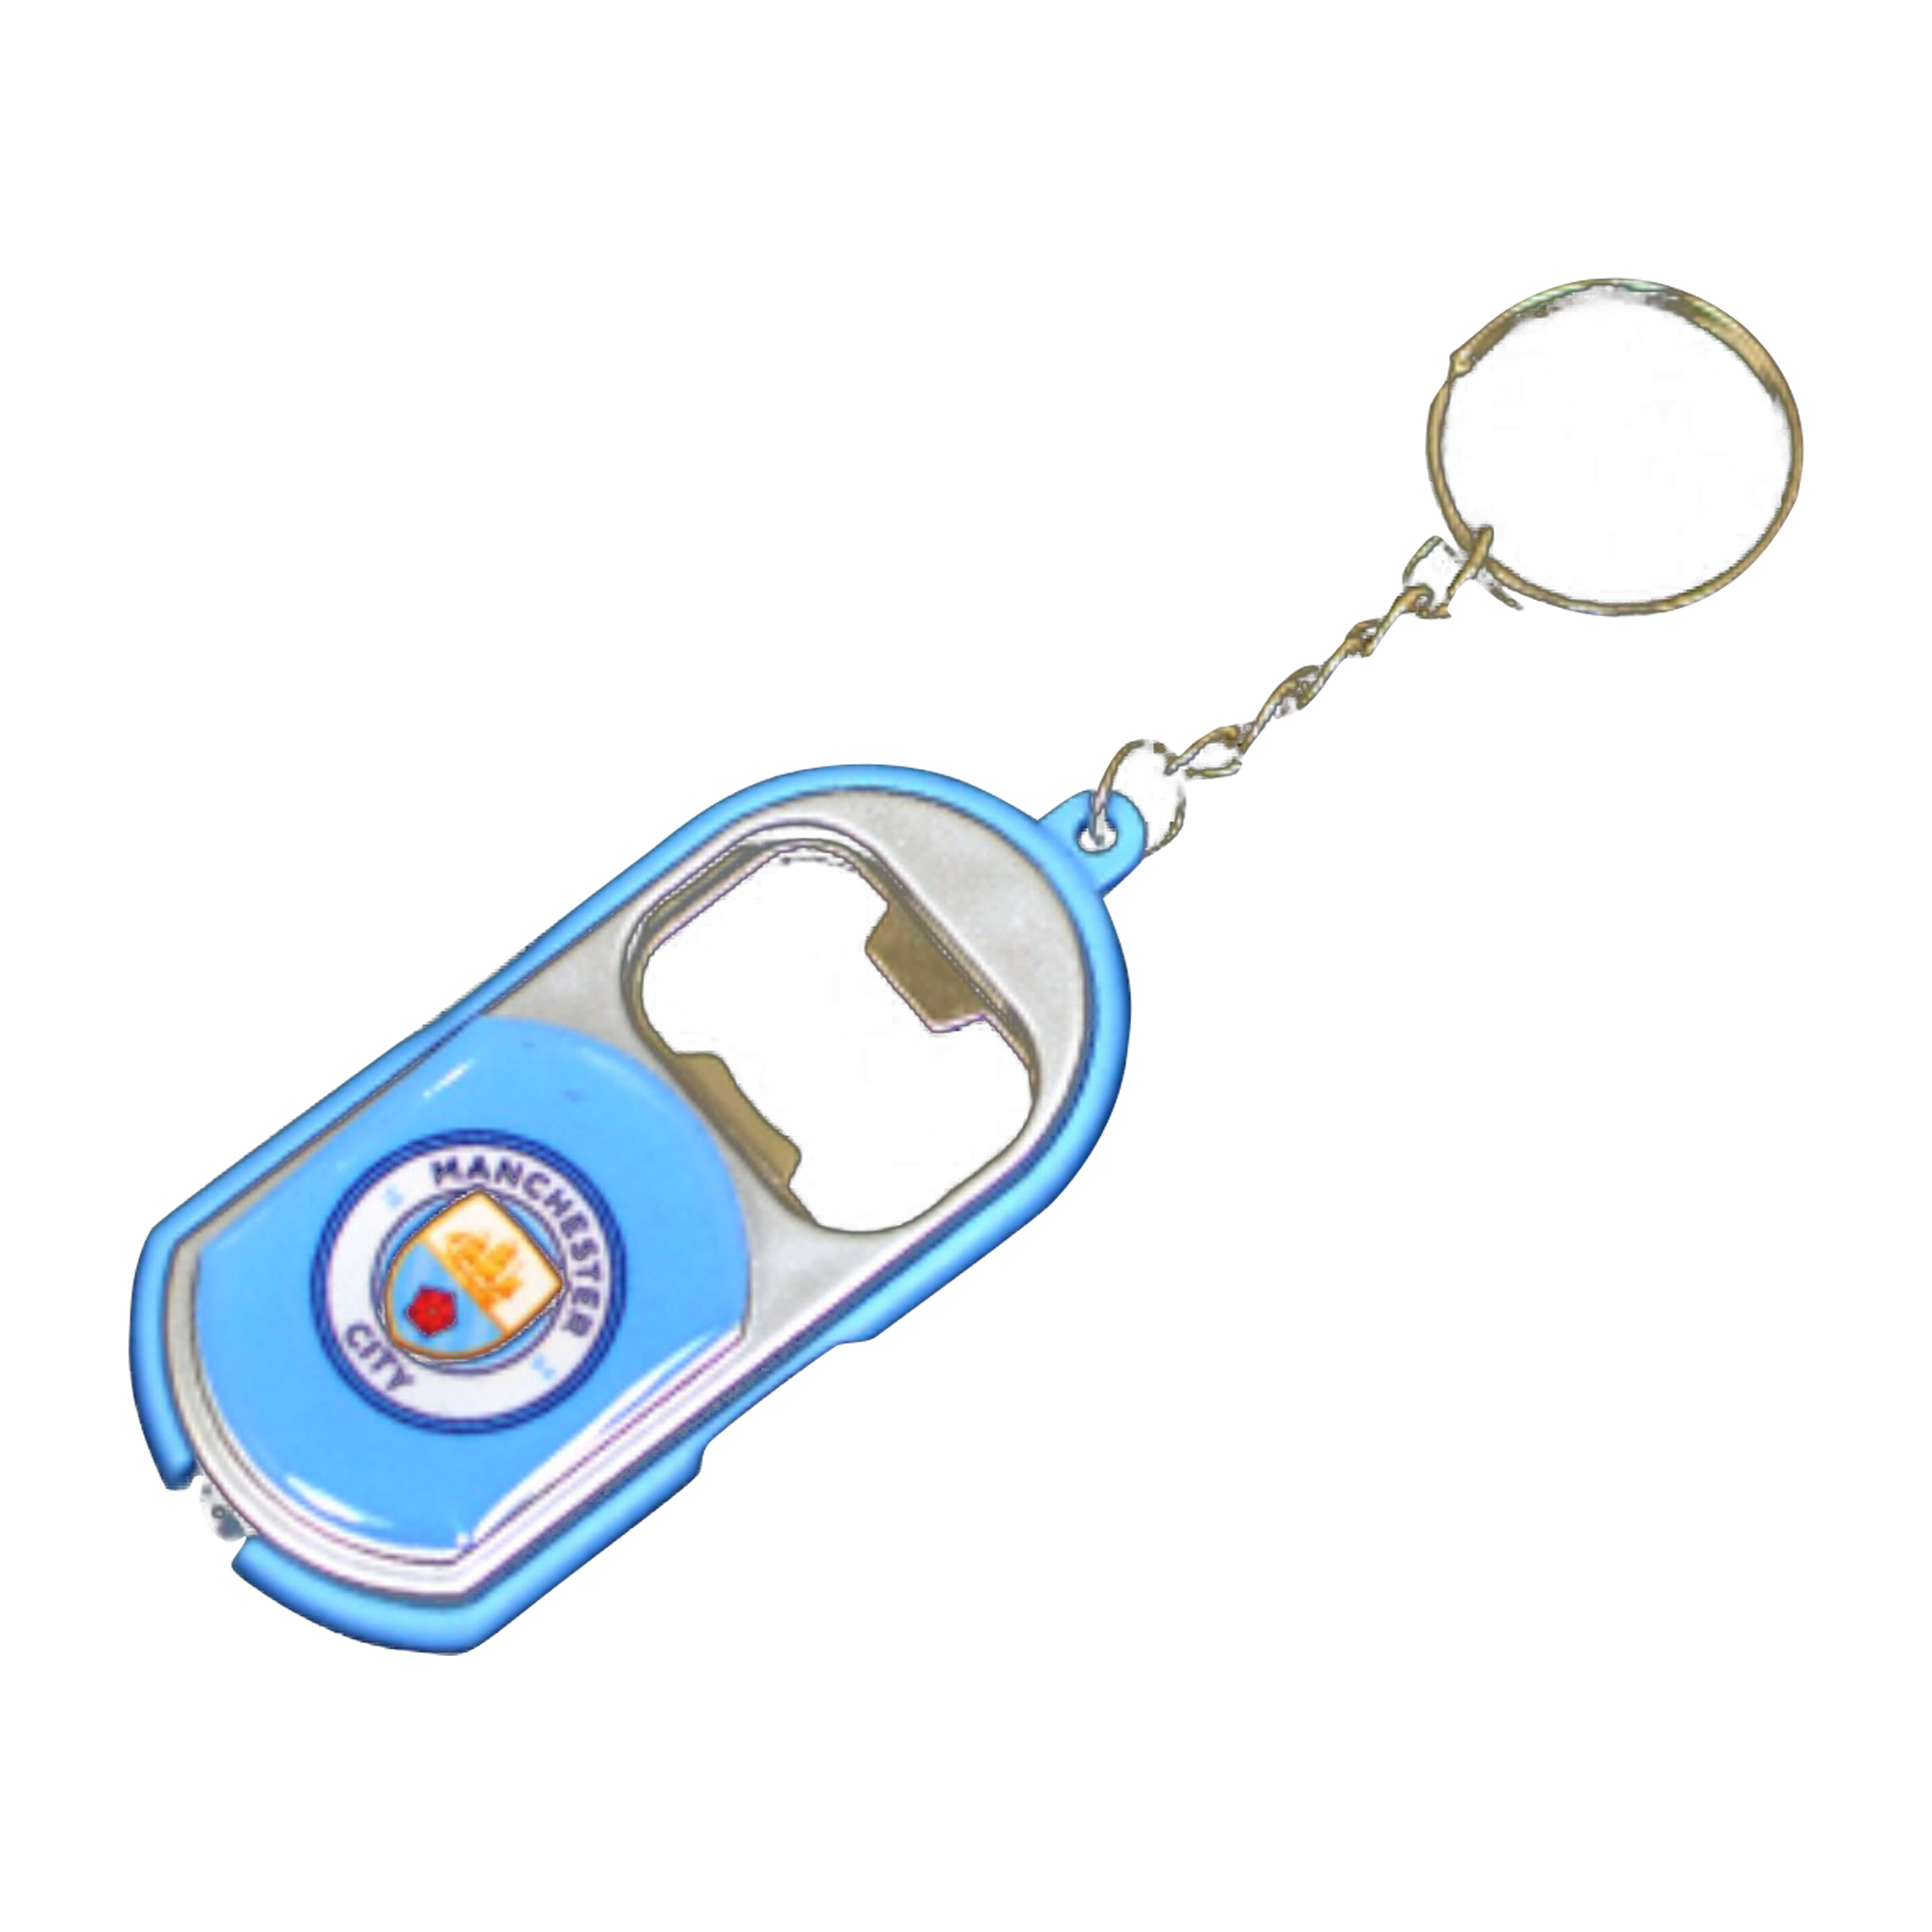 Manchester City FC Official Crest Design Bottle Opener Keyring With Torch (One Size) (Sky Blue)